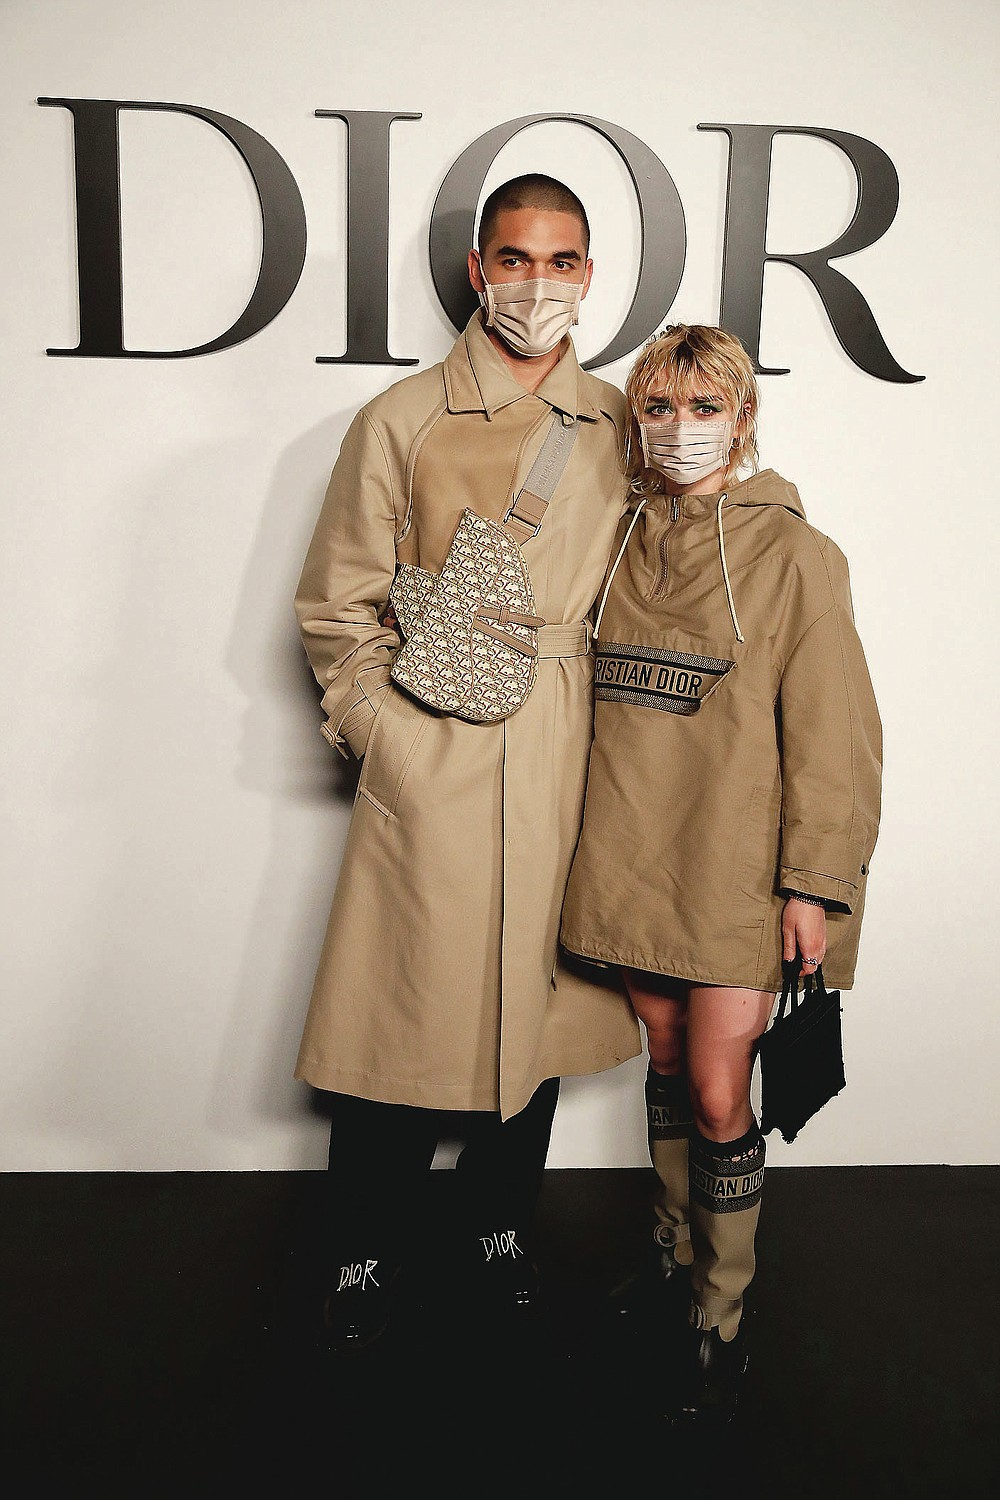 British actress Maisie Williams and Reuben Selby pose before Dior's Spring-Summer 2021 fashion collection Tuesday, Sept. 29, 2020 before the show during the Paris fashion week. (AP Photo/Francois Mori)